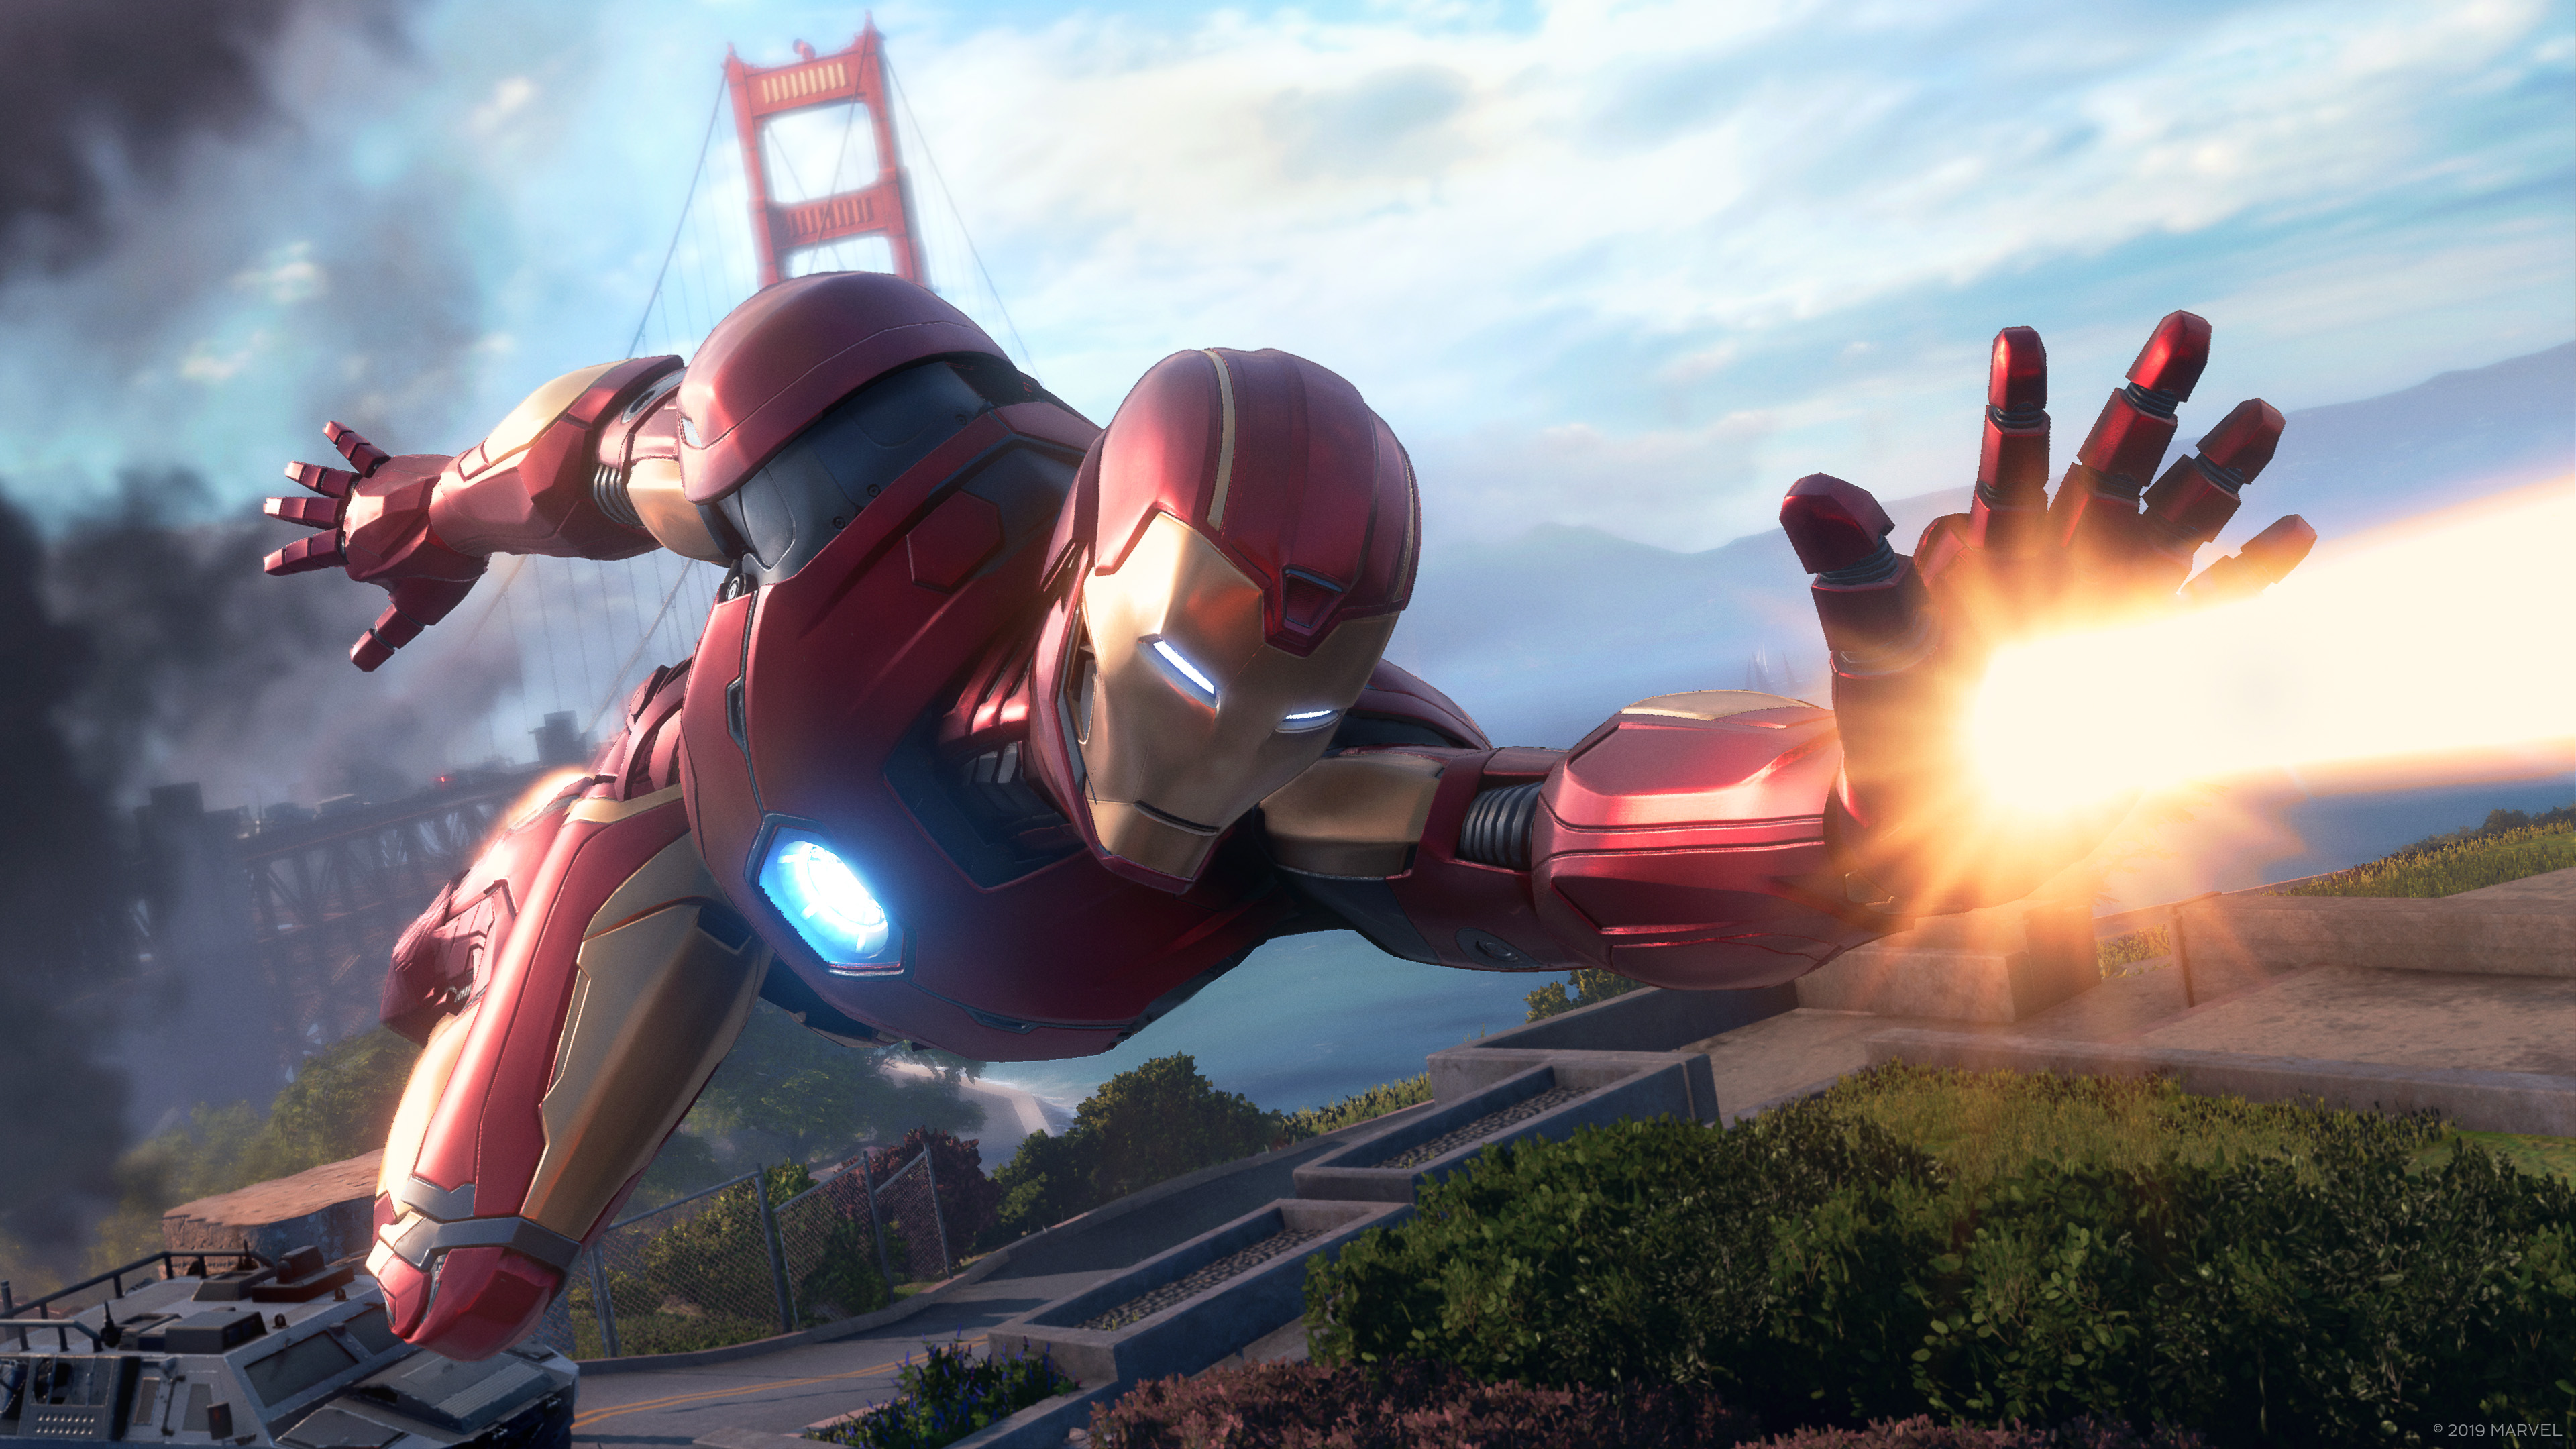 Iron Man flight combat from the 20-minute Gamescom demo for Marvel's Avengers